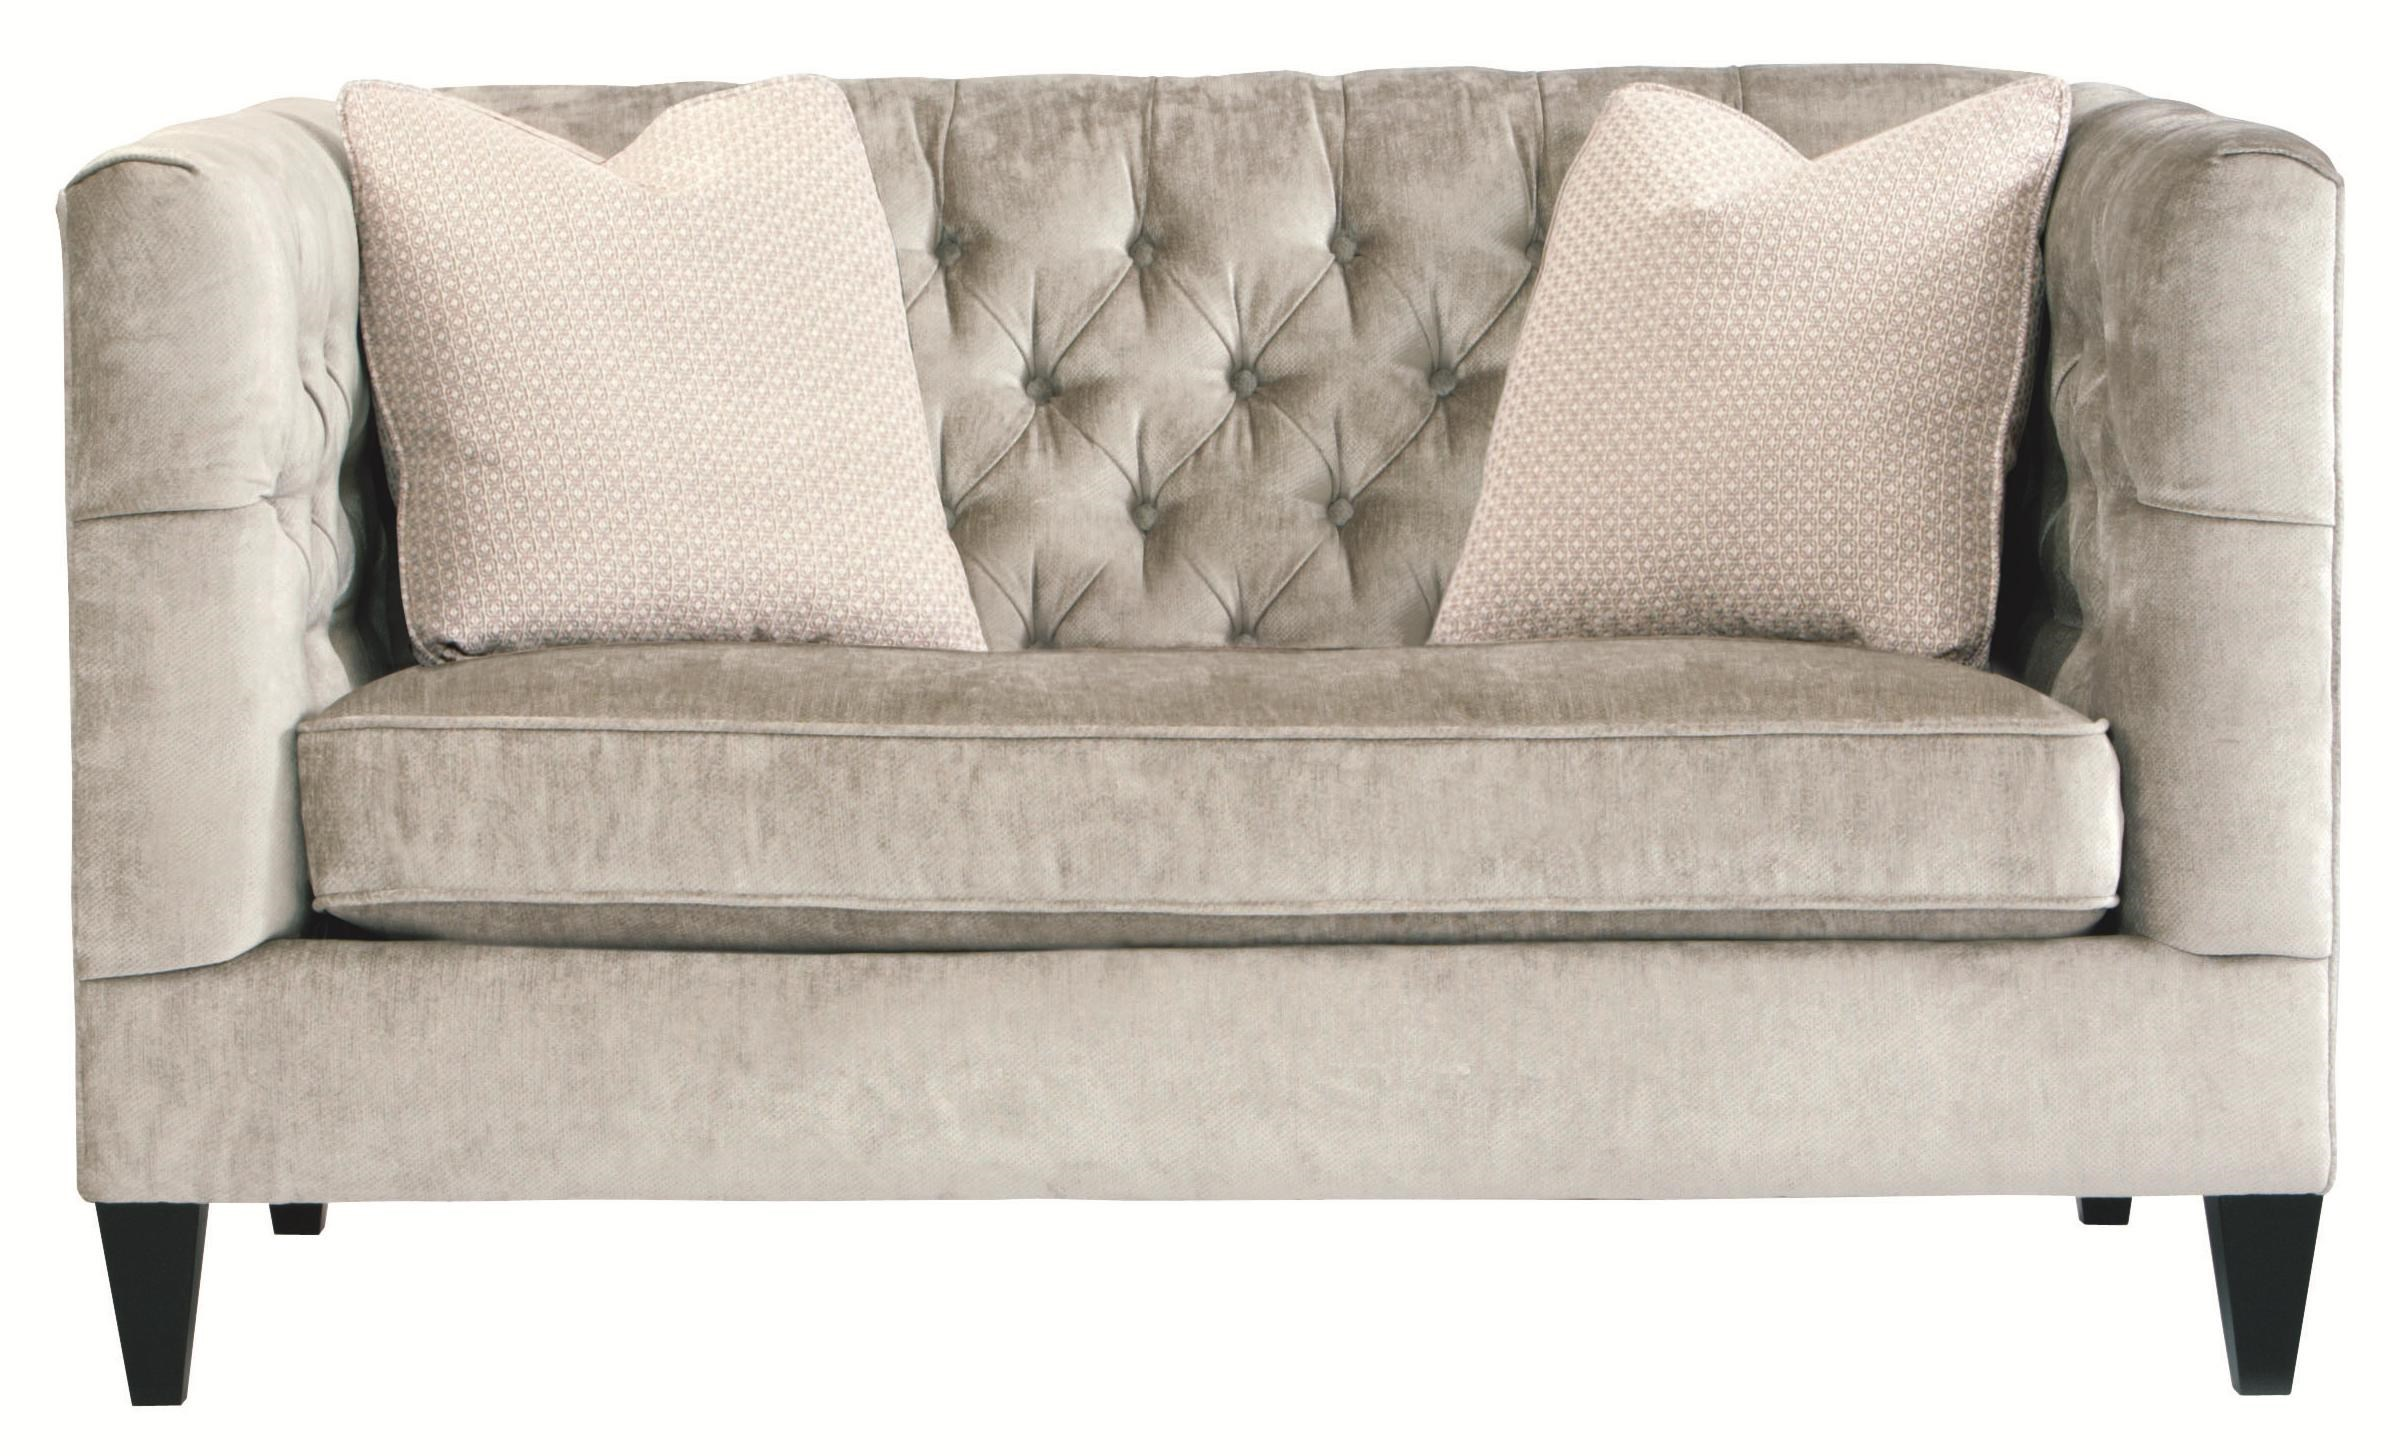 Bernhardt Interiors   Sofas Modern Transitional Styled Beckett Loveseat  With Button Tufted Back